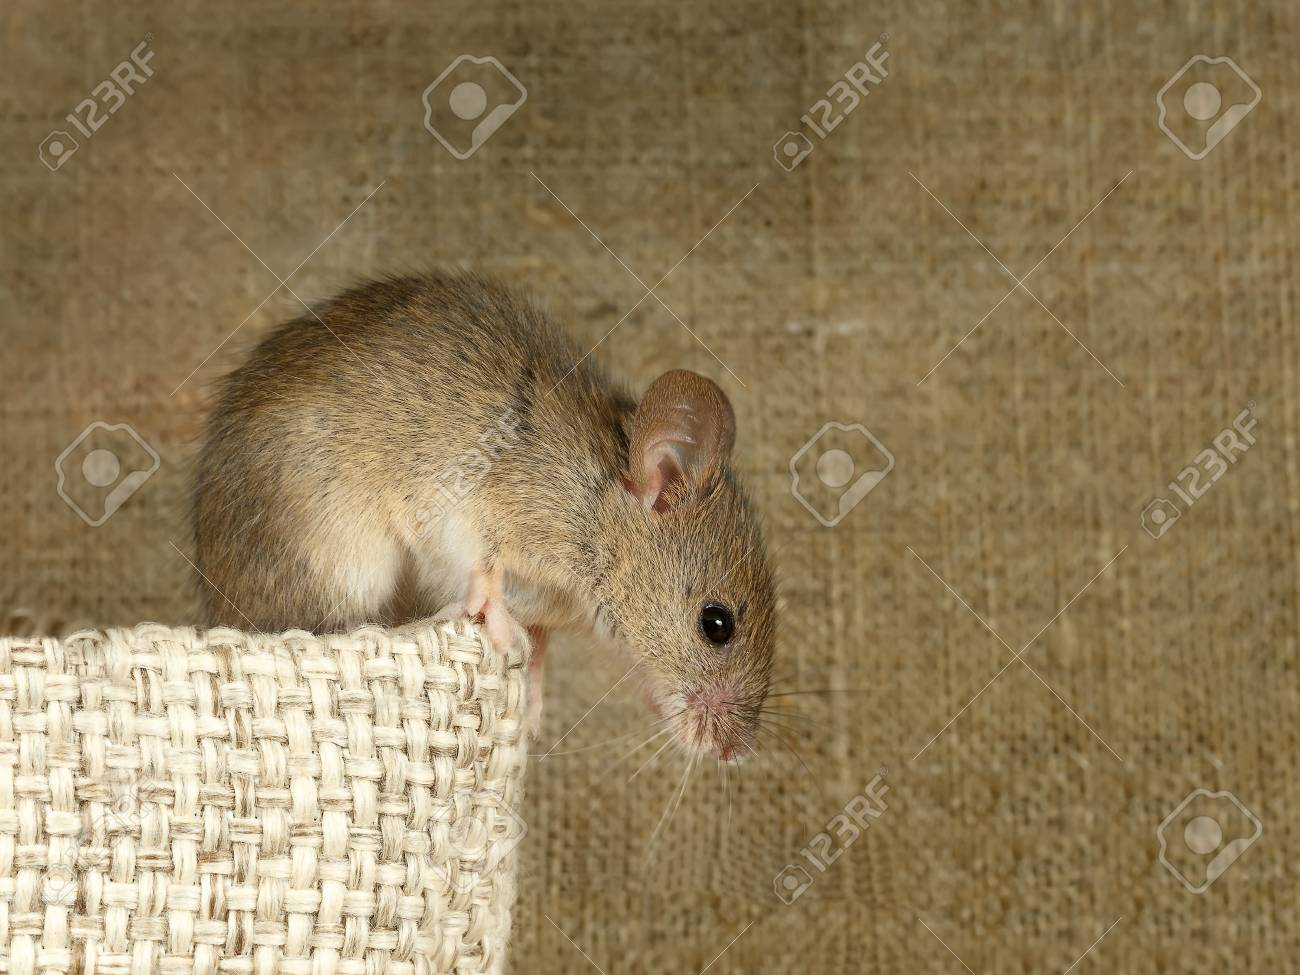 Closeup of a vole mouse sits on top of a linen sack and looks down on a background of the canvas. Inside storehouse. Rodents control concept. Standard-Bild - 91554313